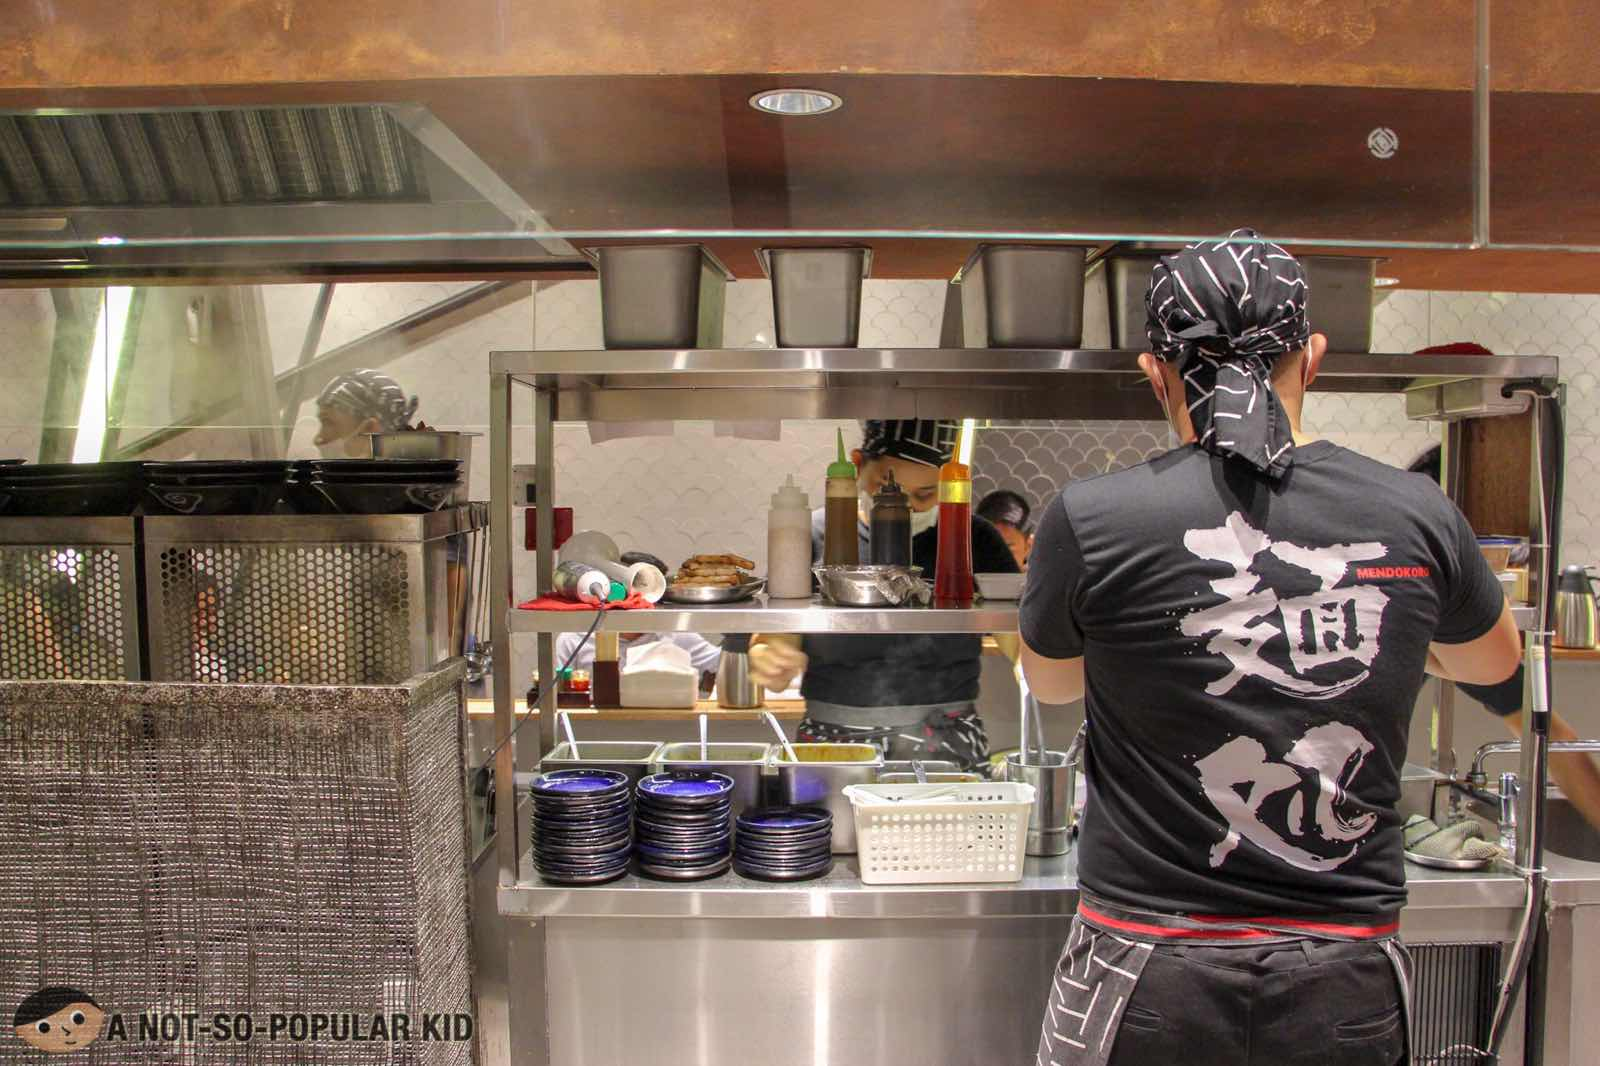 Passionate servers of ramen in Mendokoro Ramenba